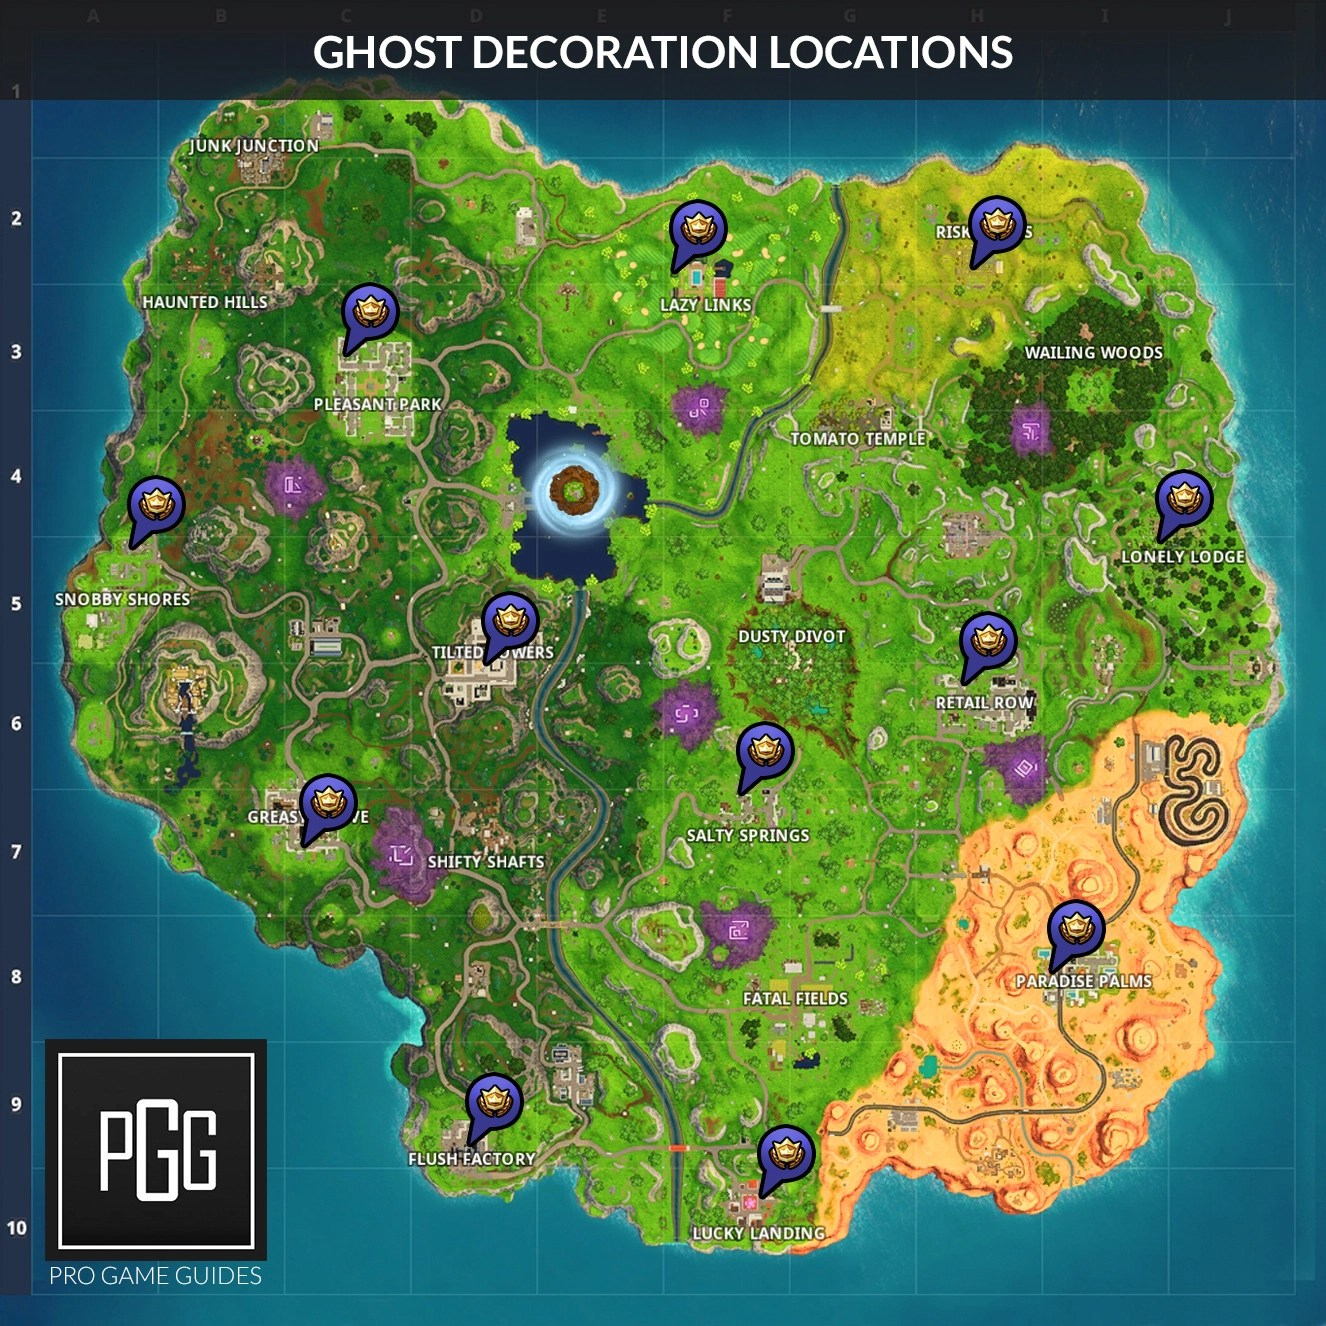 Decoration Location Fortnitemares Ghost Decoration Locations – Pro Game Guides